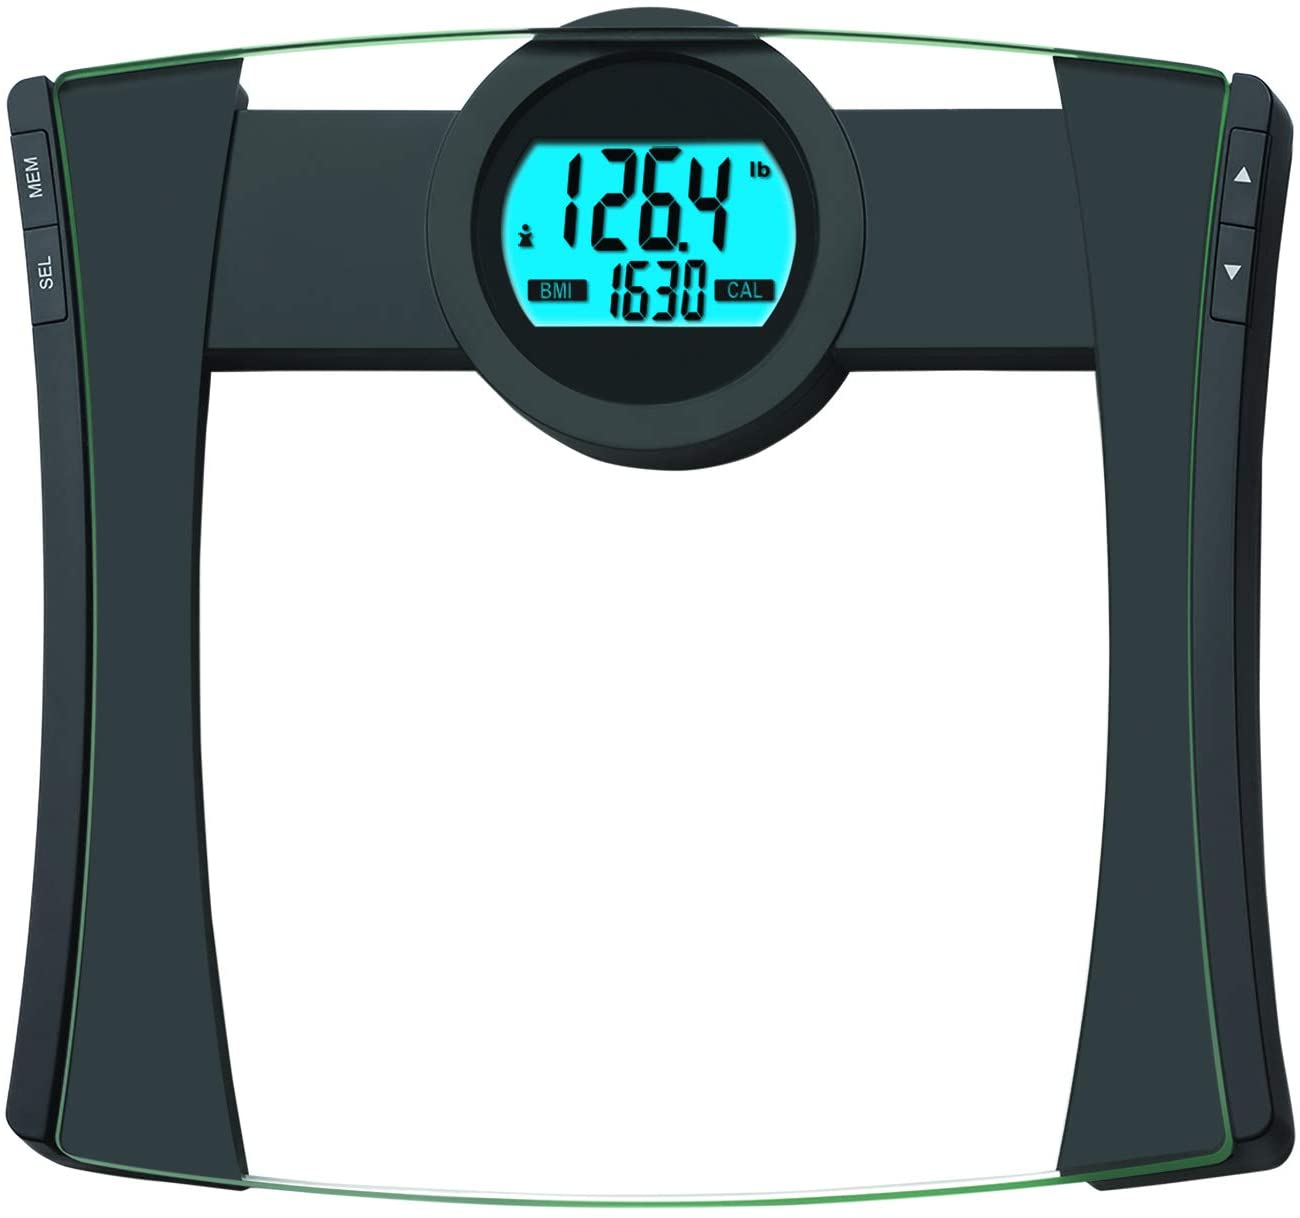 EatSmart Precision CalPal Digtal Bathroom Scale